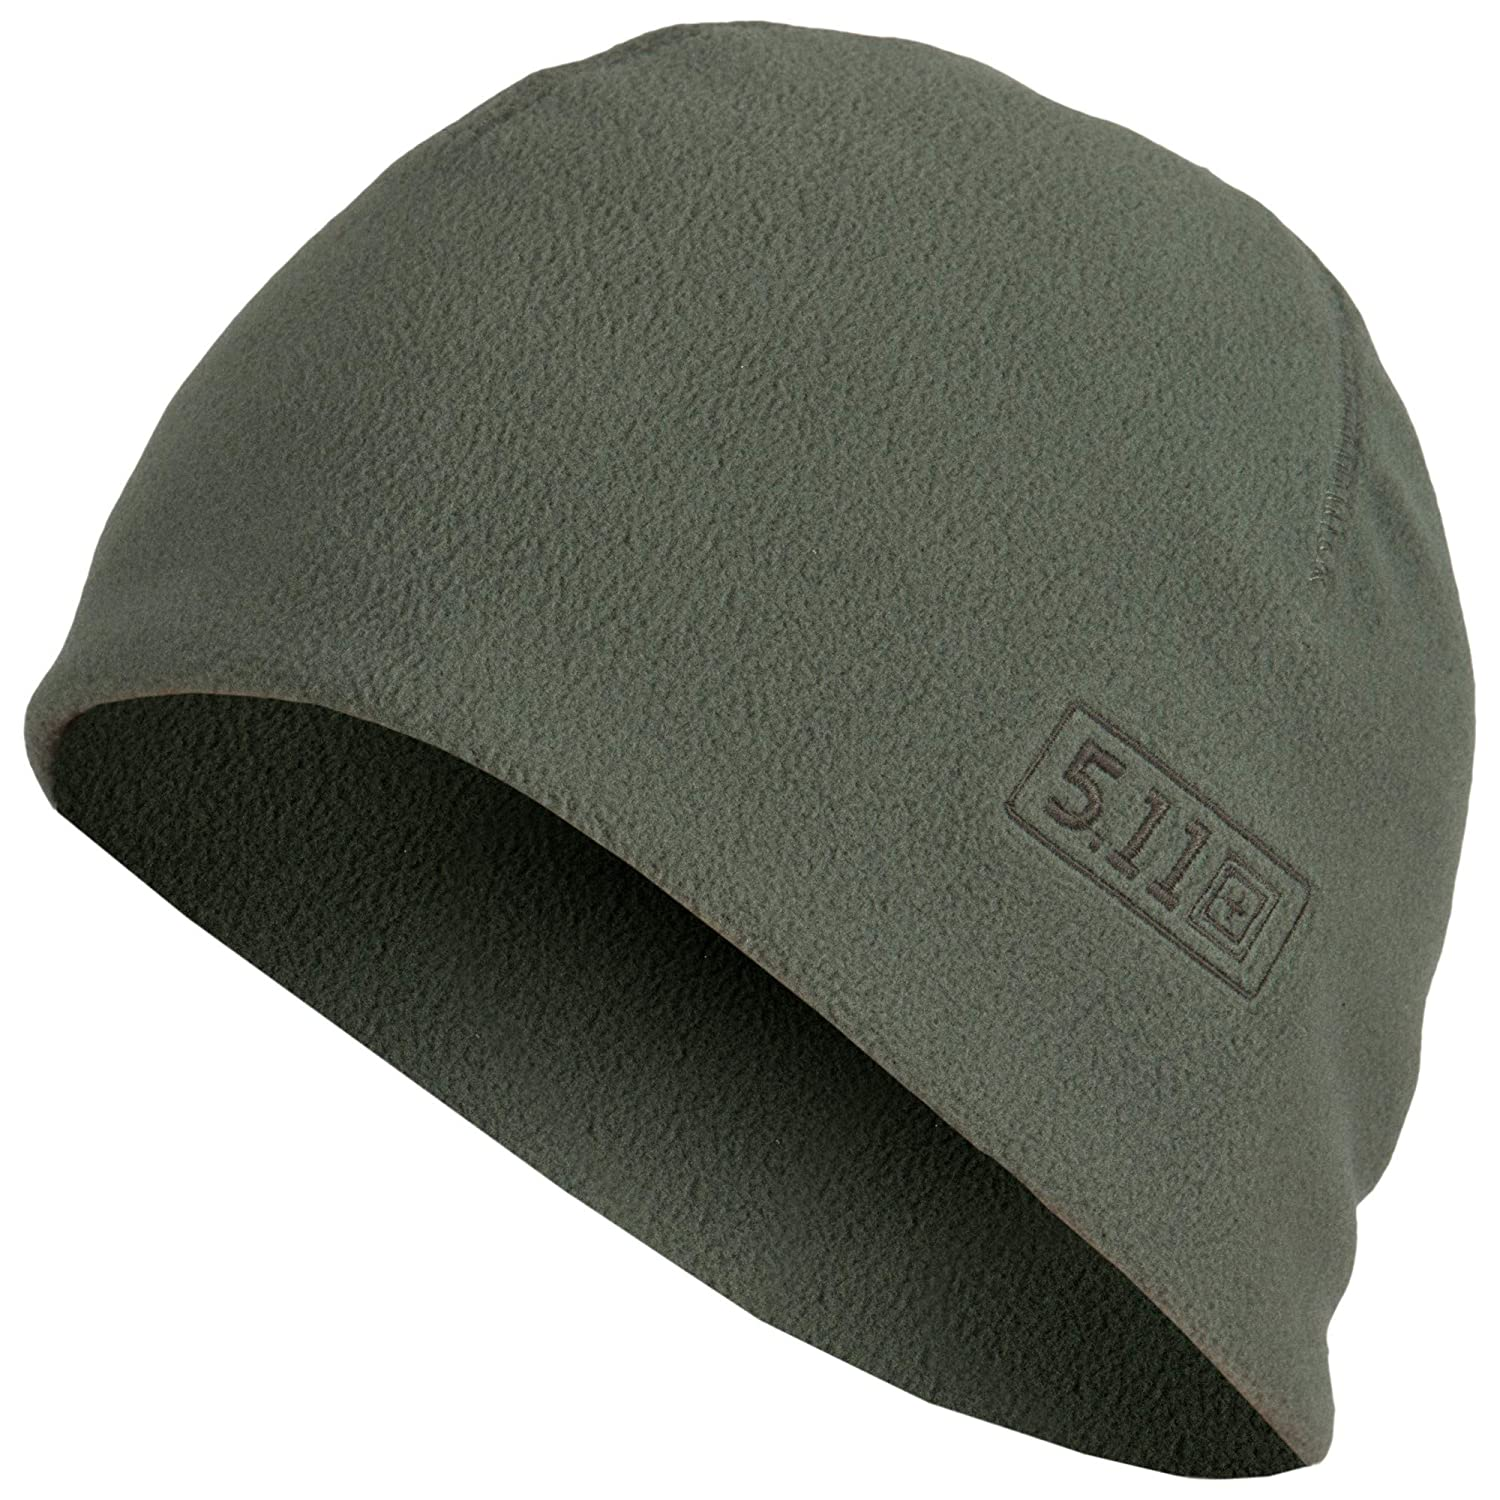 52b2bf4b64154 Amazon.com   5.11 Tactical Watch Cap Cold Weather Outdoor Fleece Beanie